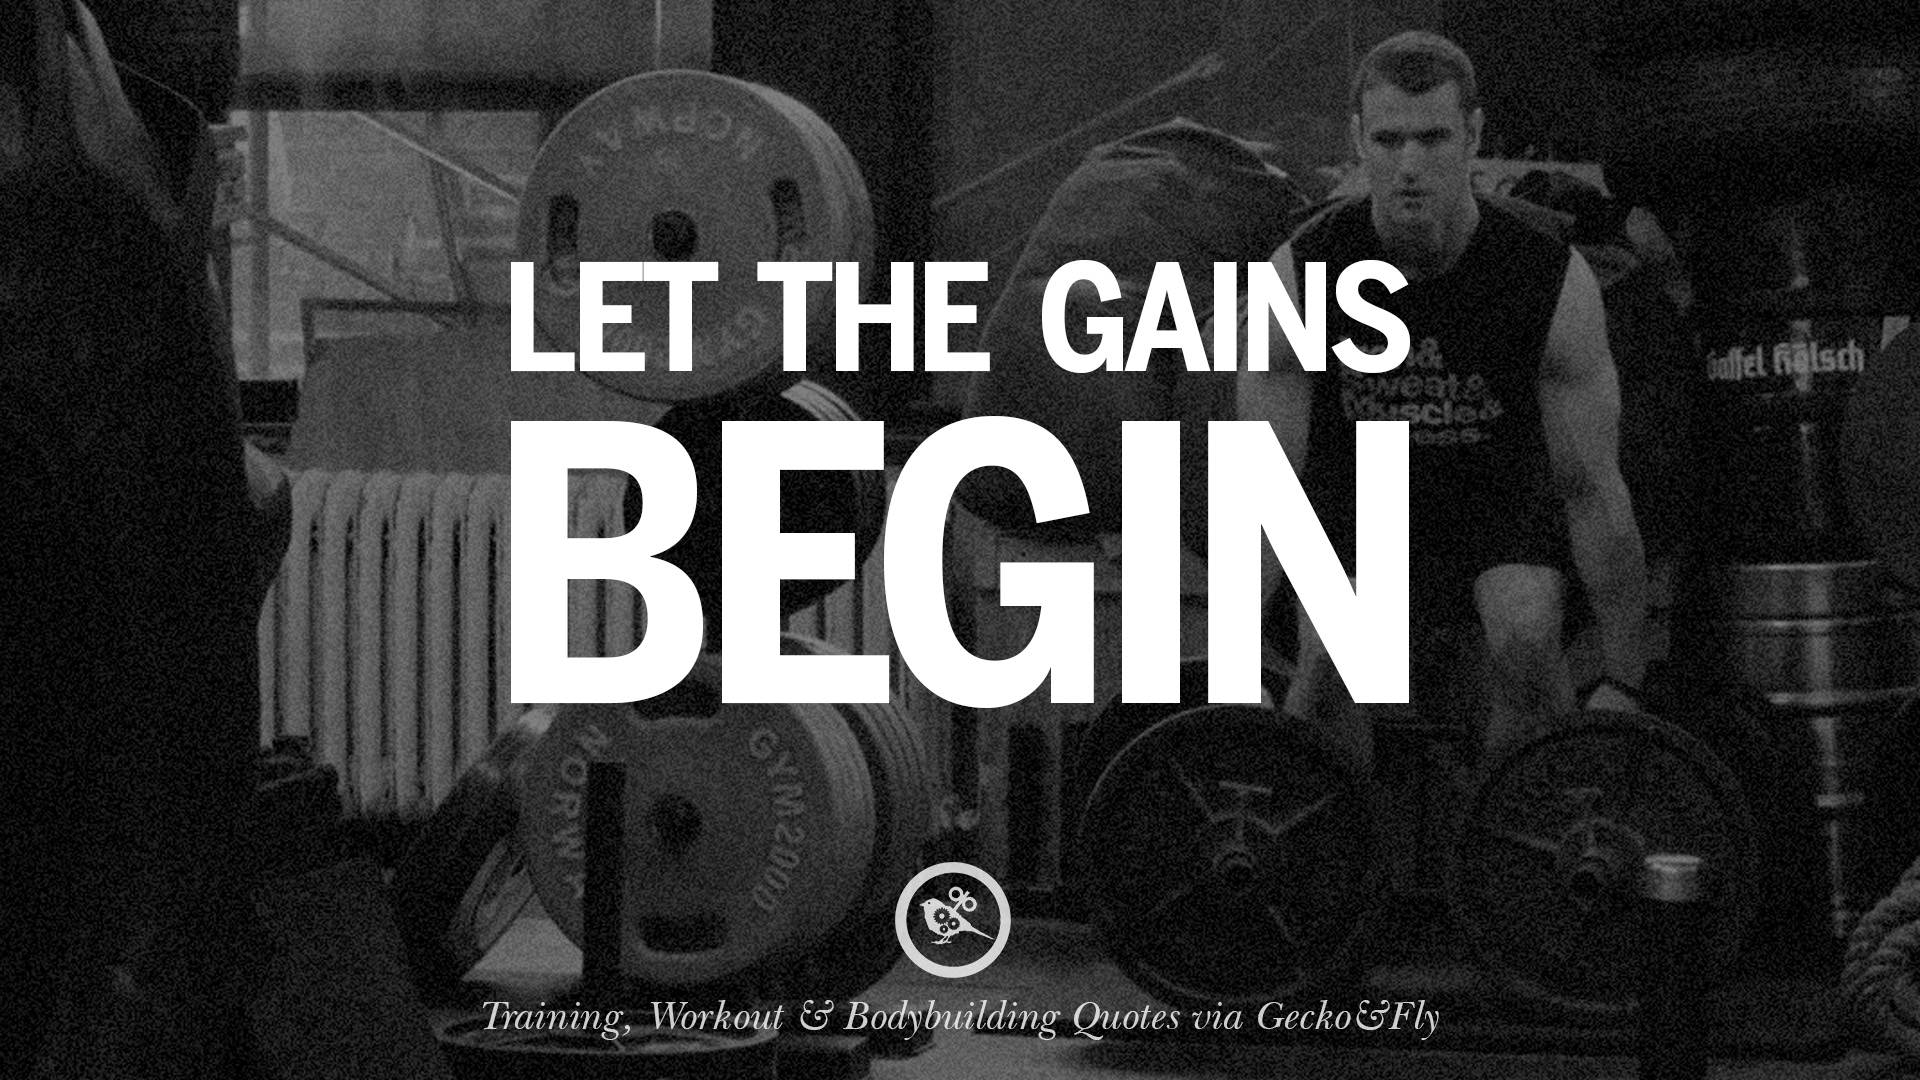 Bodybuilding Quotes 10 Muscle Boosting Quotes For Workout & Bodybuilding Gains